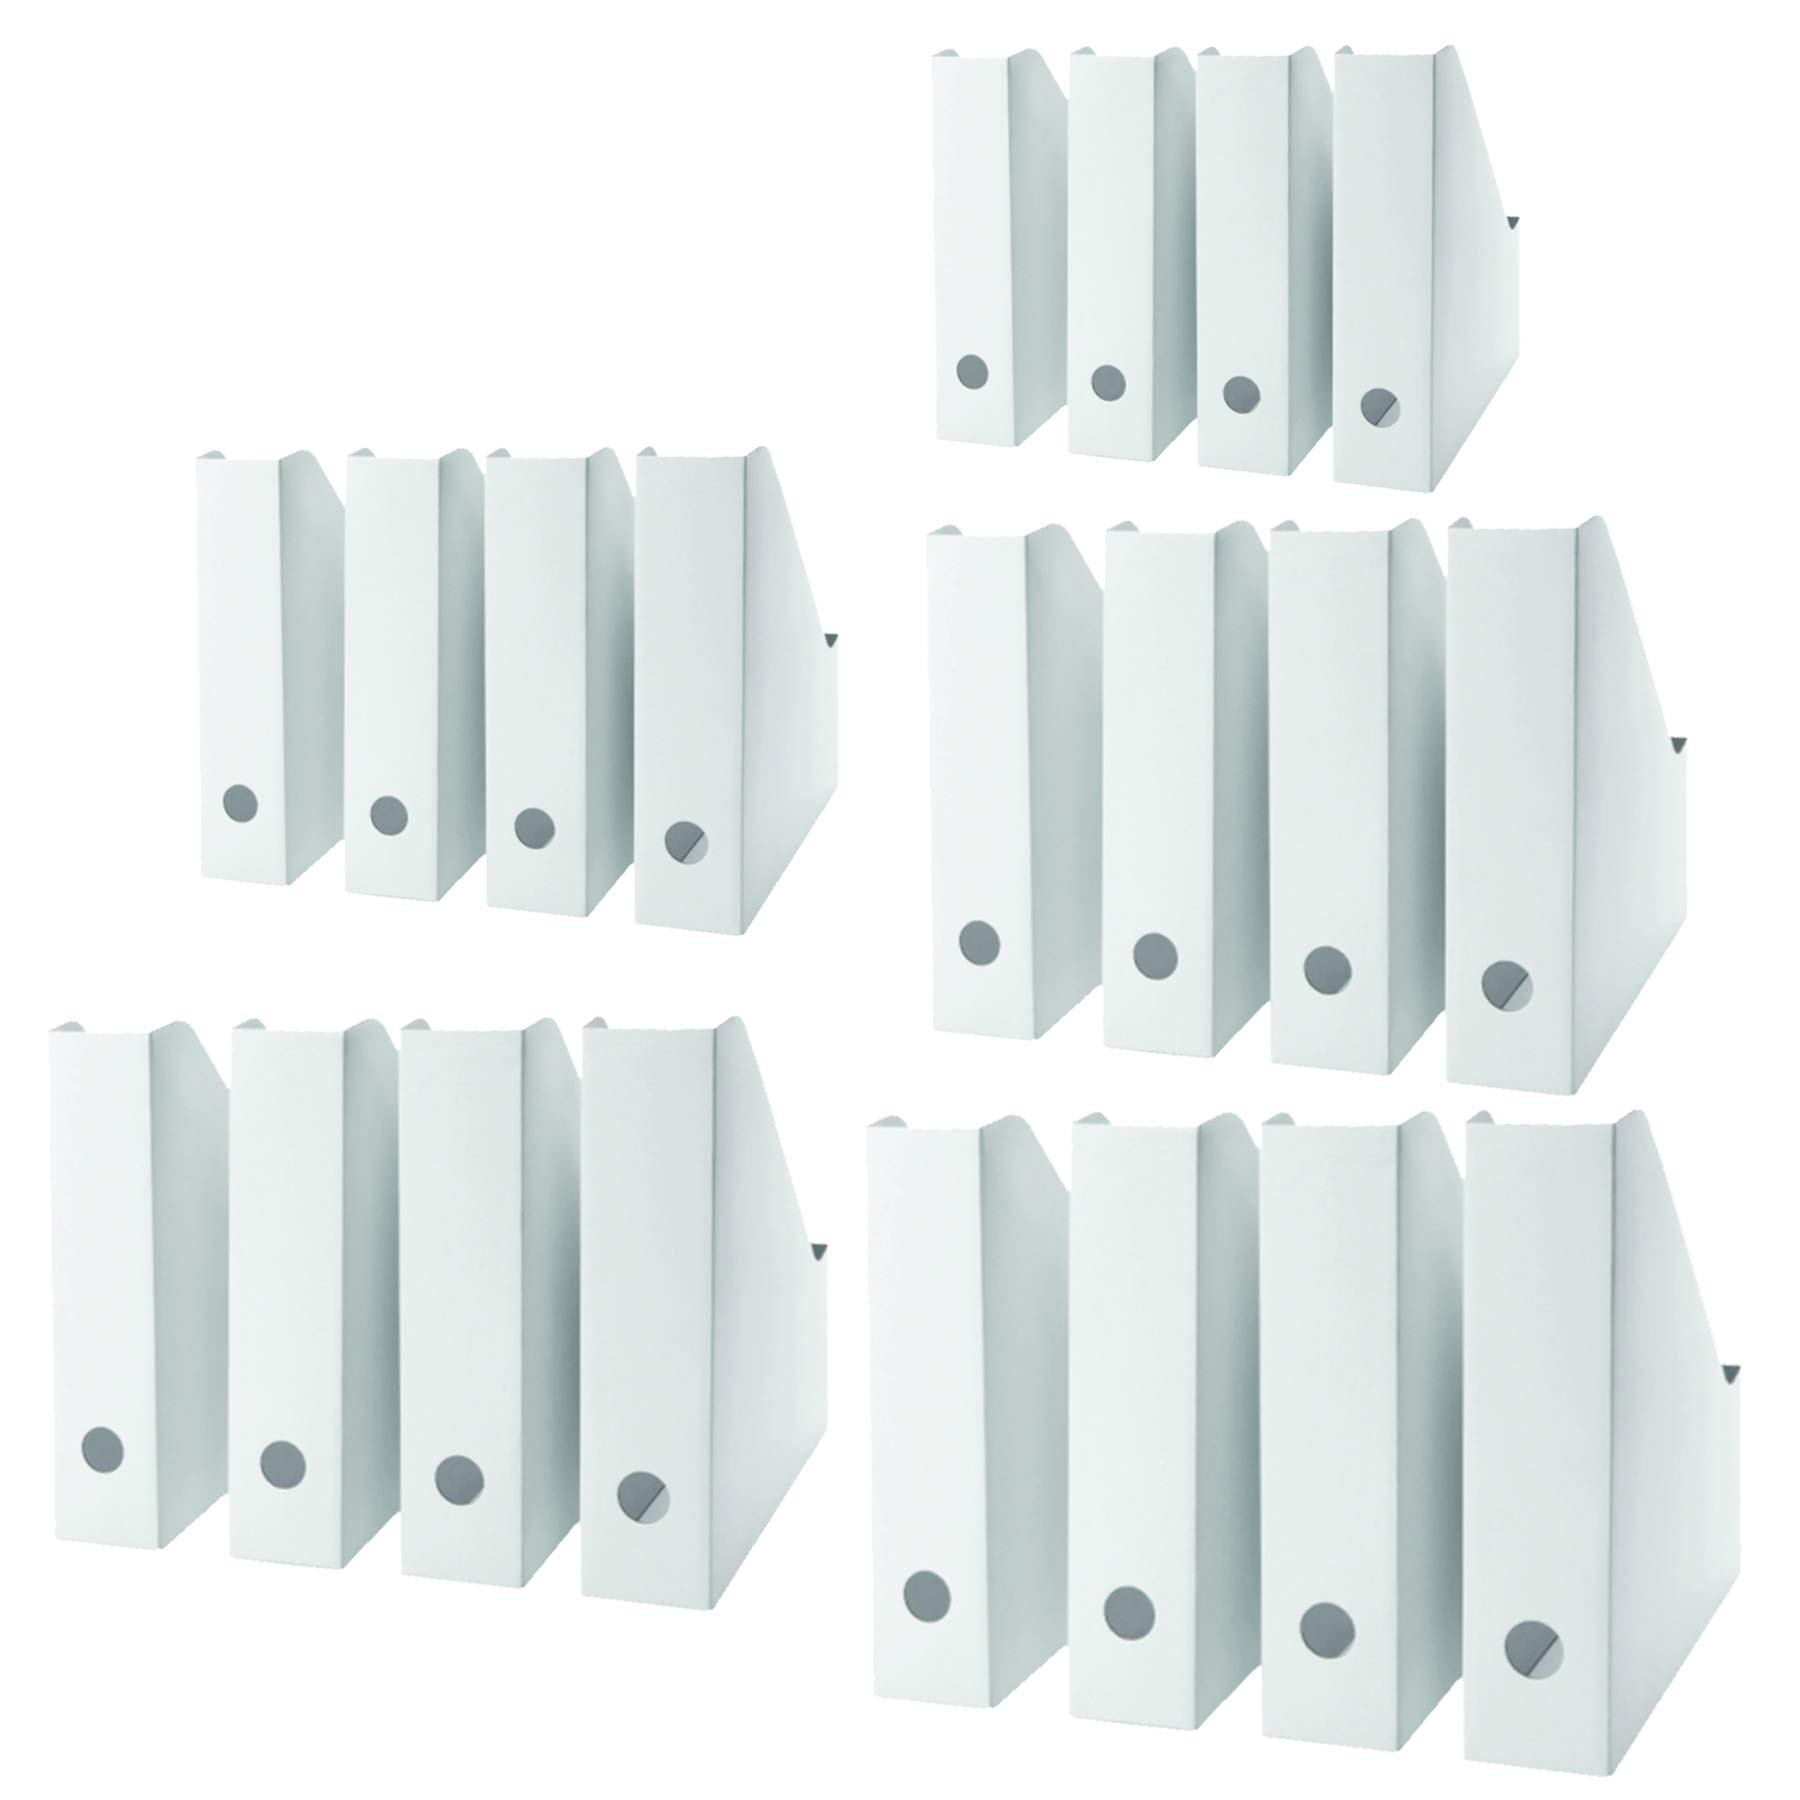 20 Pack Magazine, Document Organizer Holder Laminated in White for Office Home use (20) IKEA comparable. by AZ_Organisers